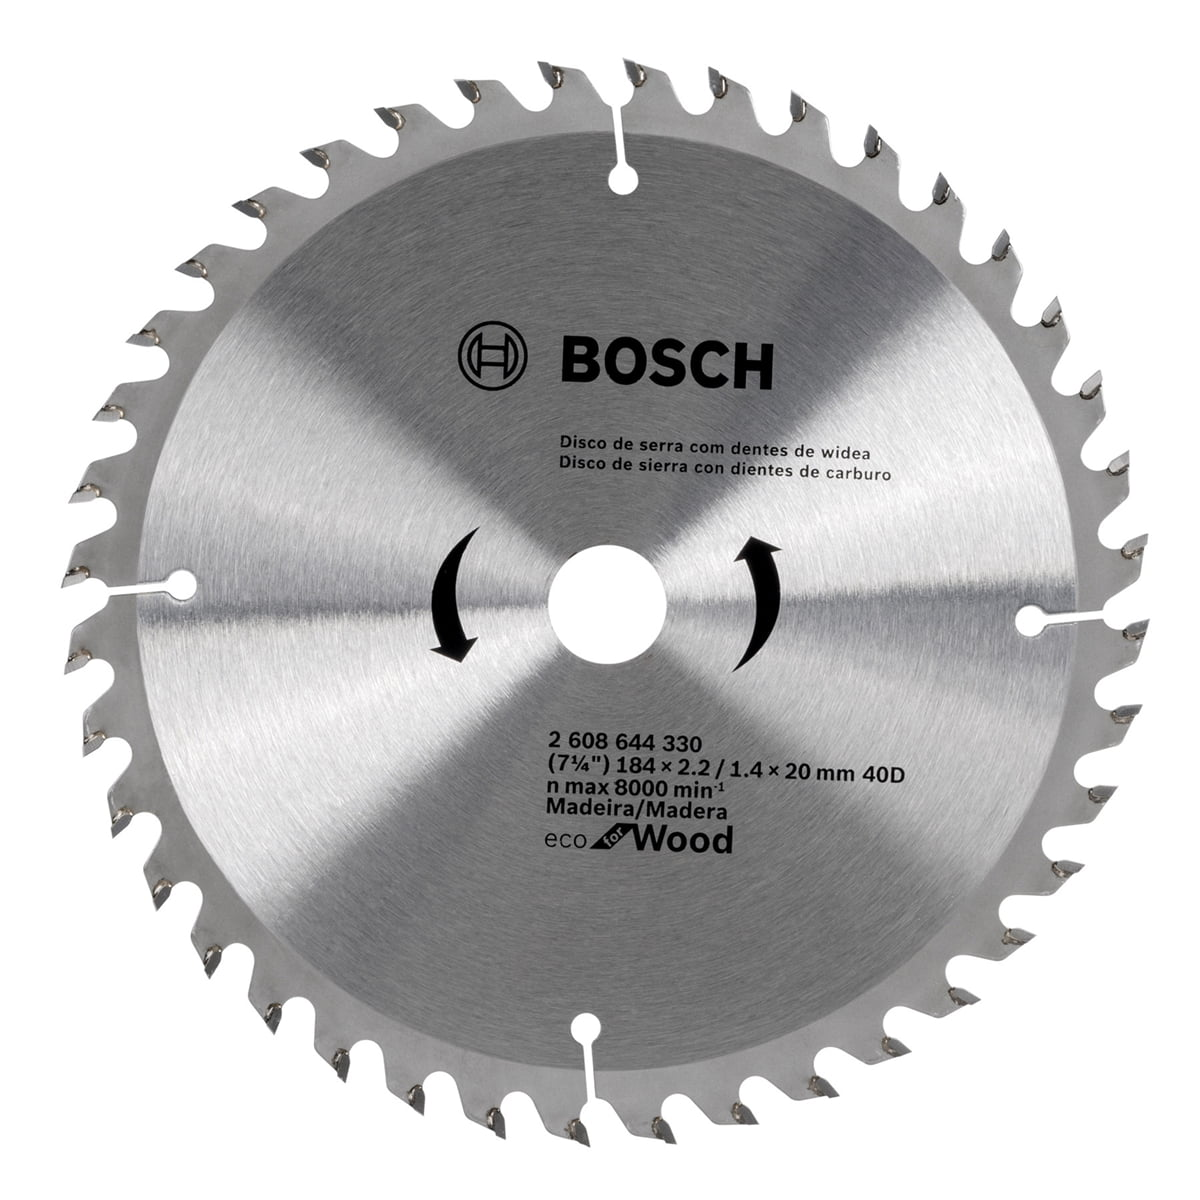 "Disco de Serra com Dentes de Widea 184mm (7.1/4"") 40D - Bosch"